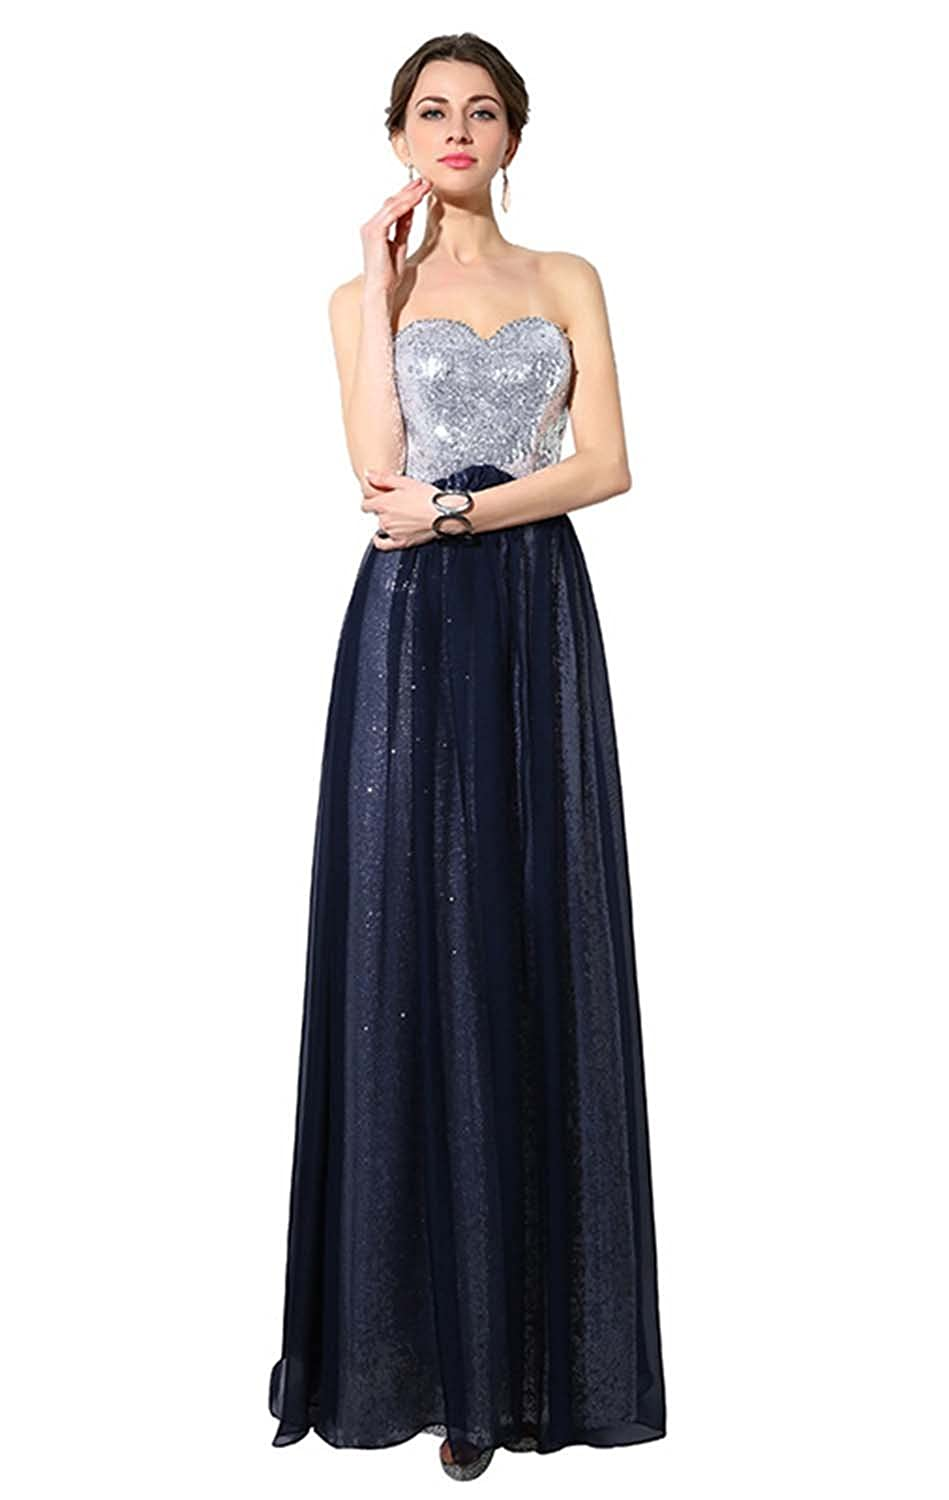 Fanhao Women's Sweetheart Full Sequins Shining Long Formal Bridesmaid Dress